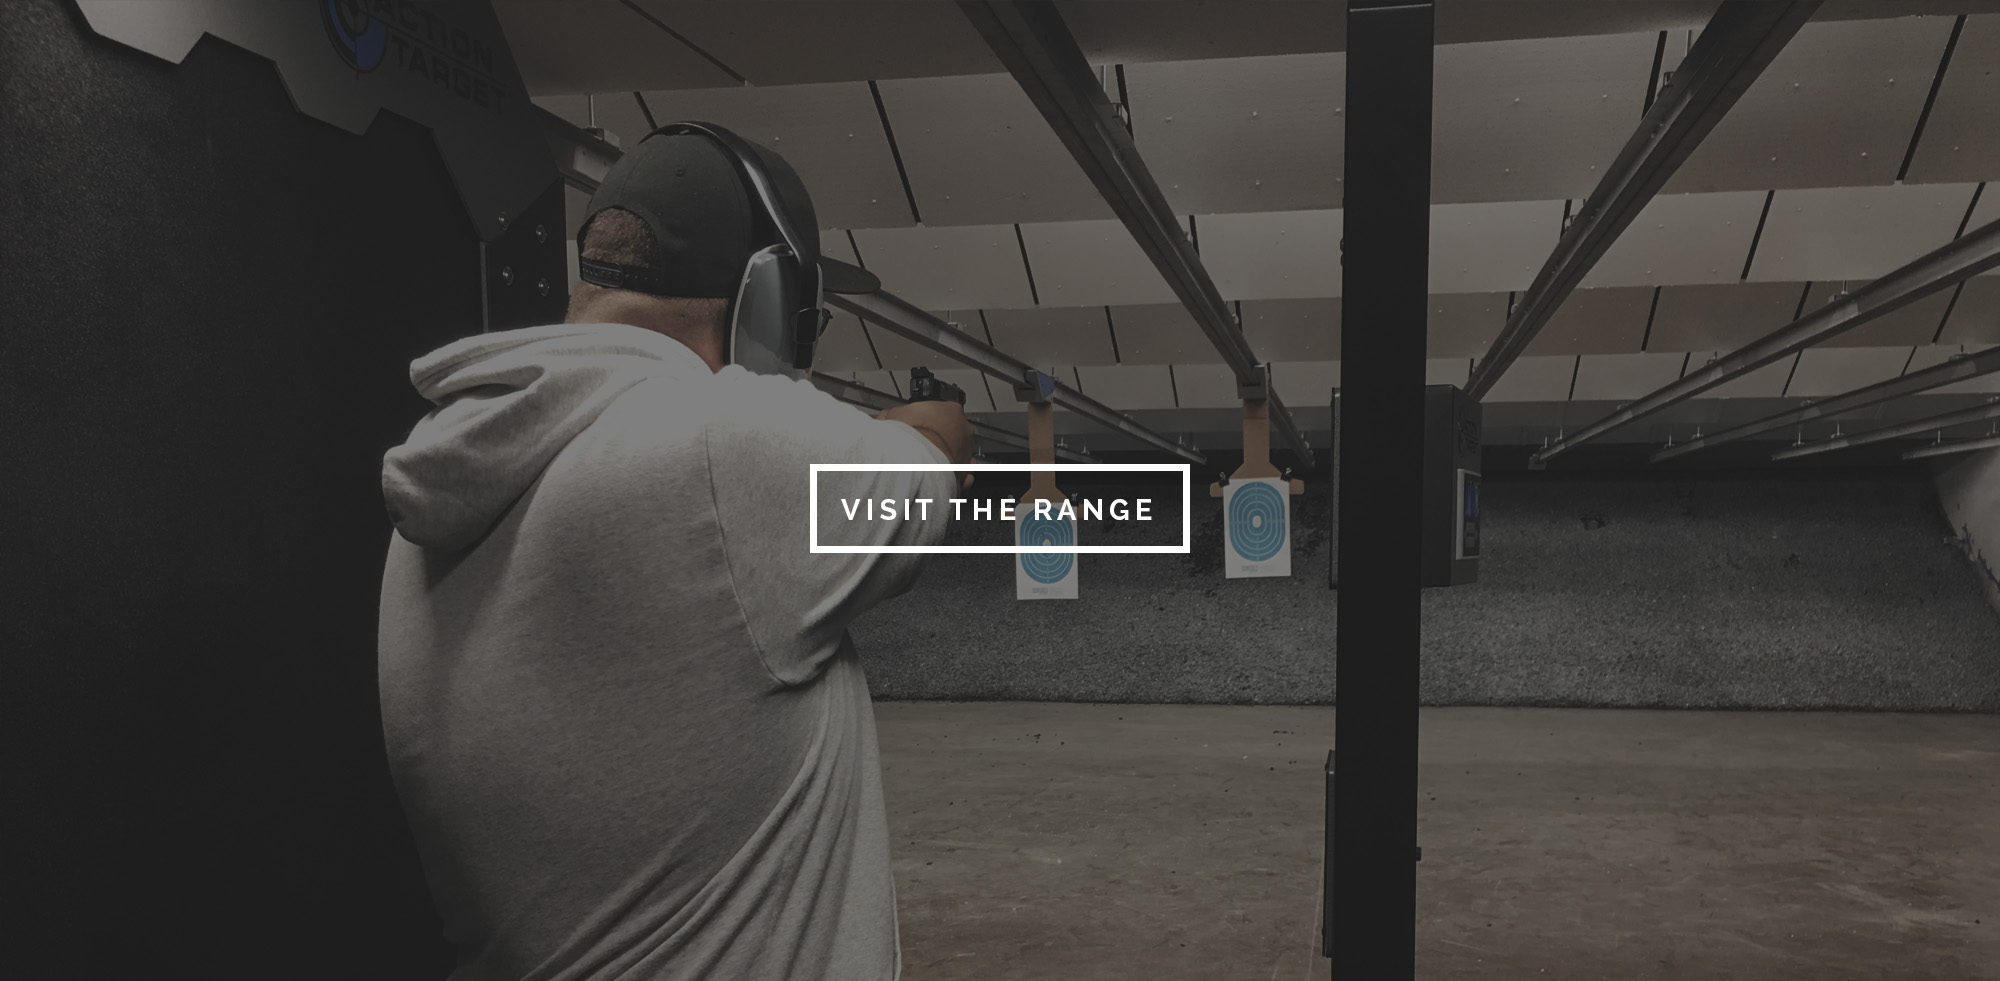 CLICK TO TAKE A LOOK OUR THE GUN SHOP